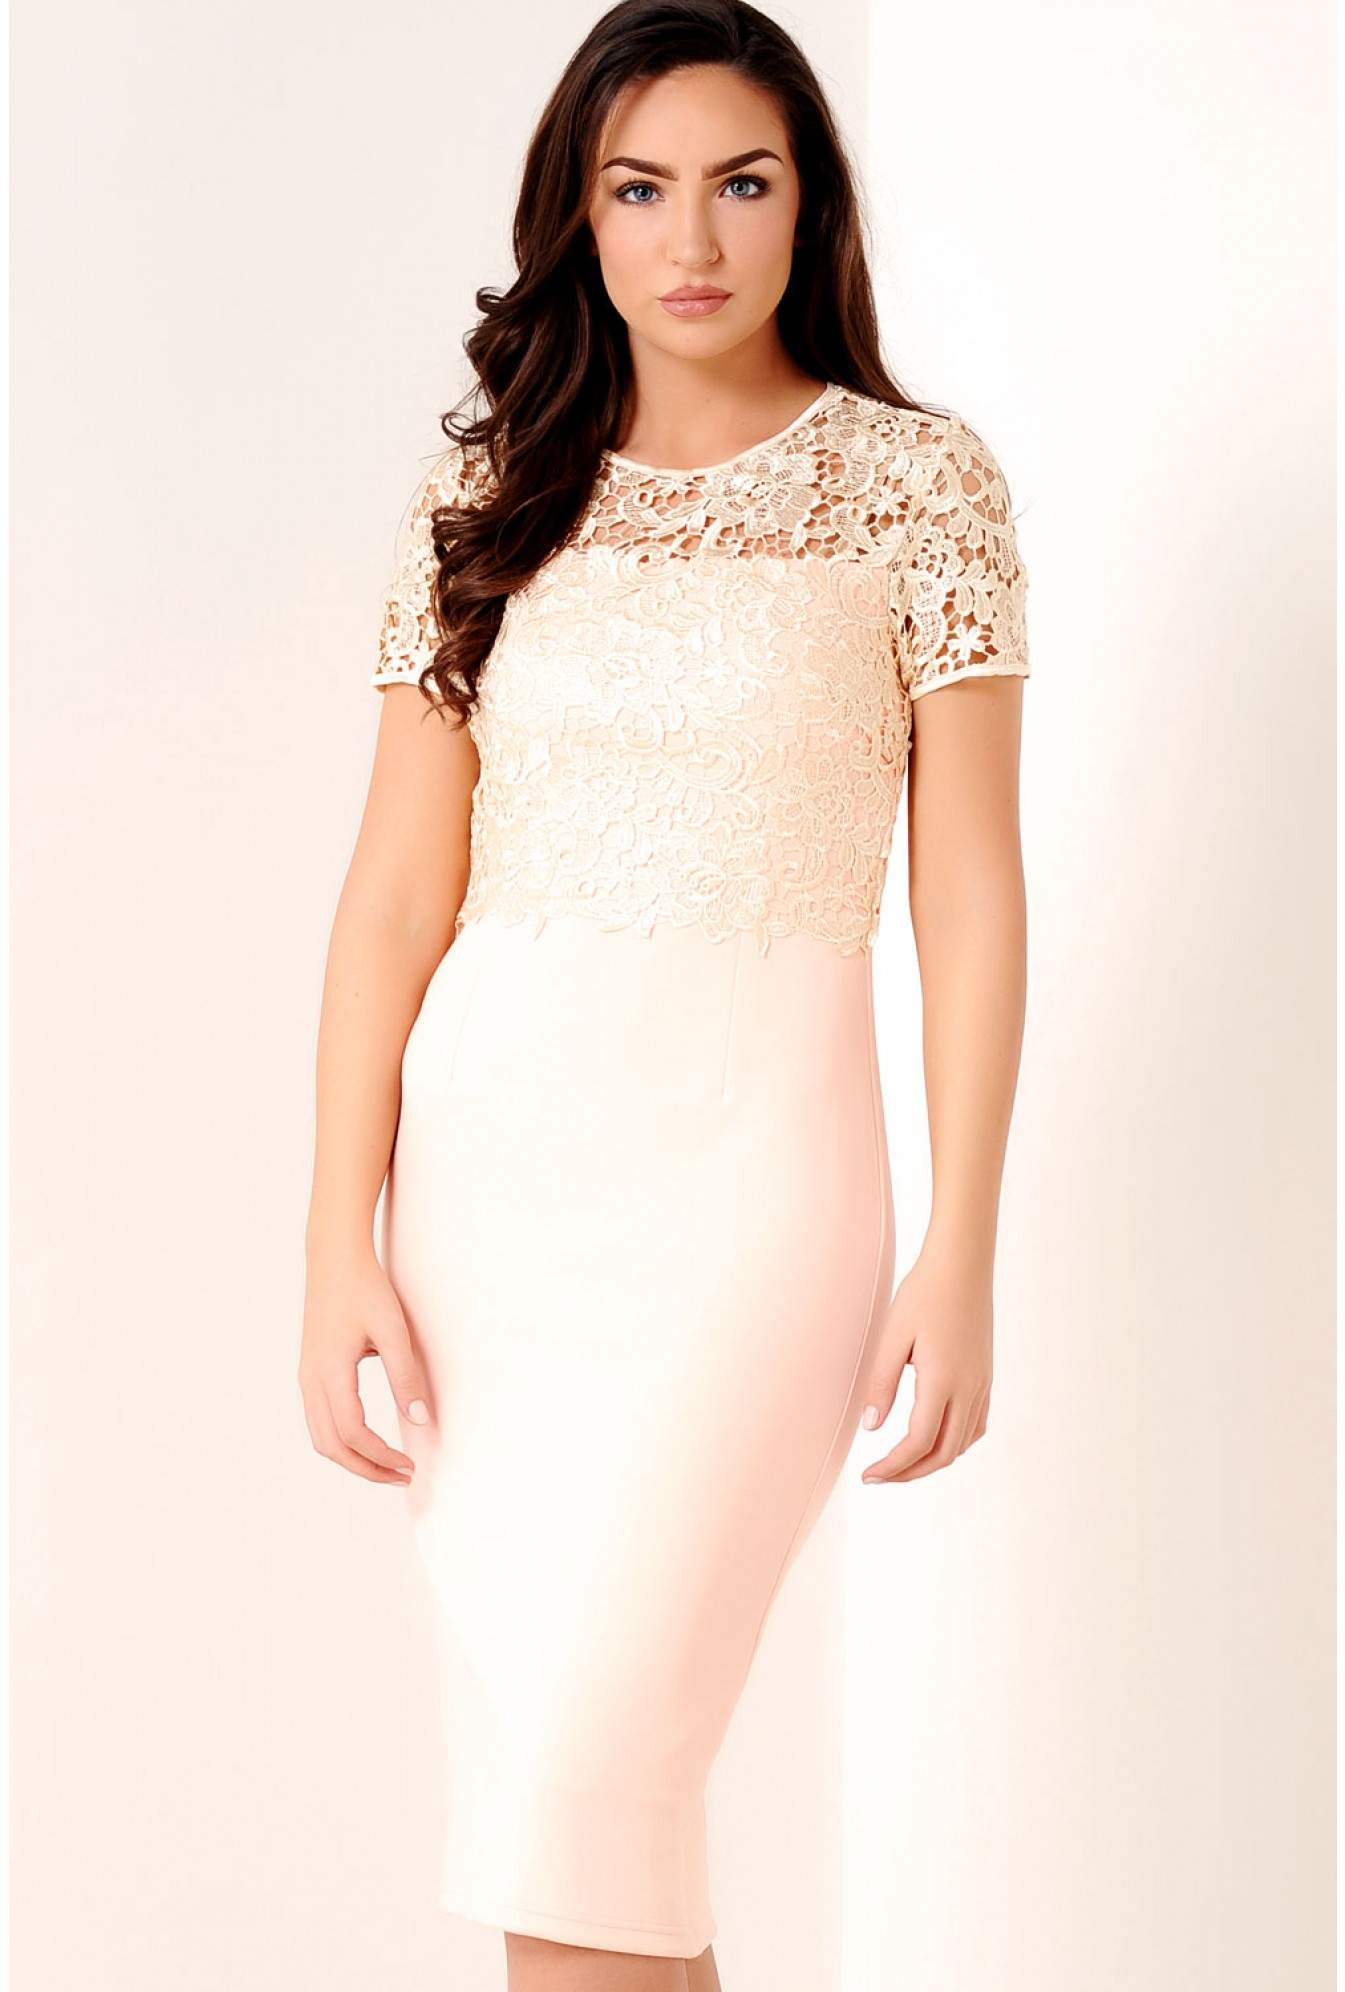 a3c484d6a6945 Blythe Lace Overlay Dress in Nude